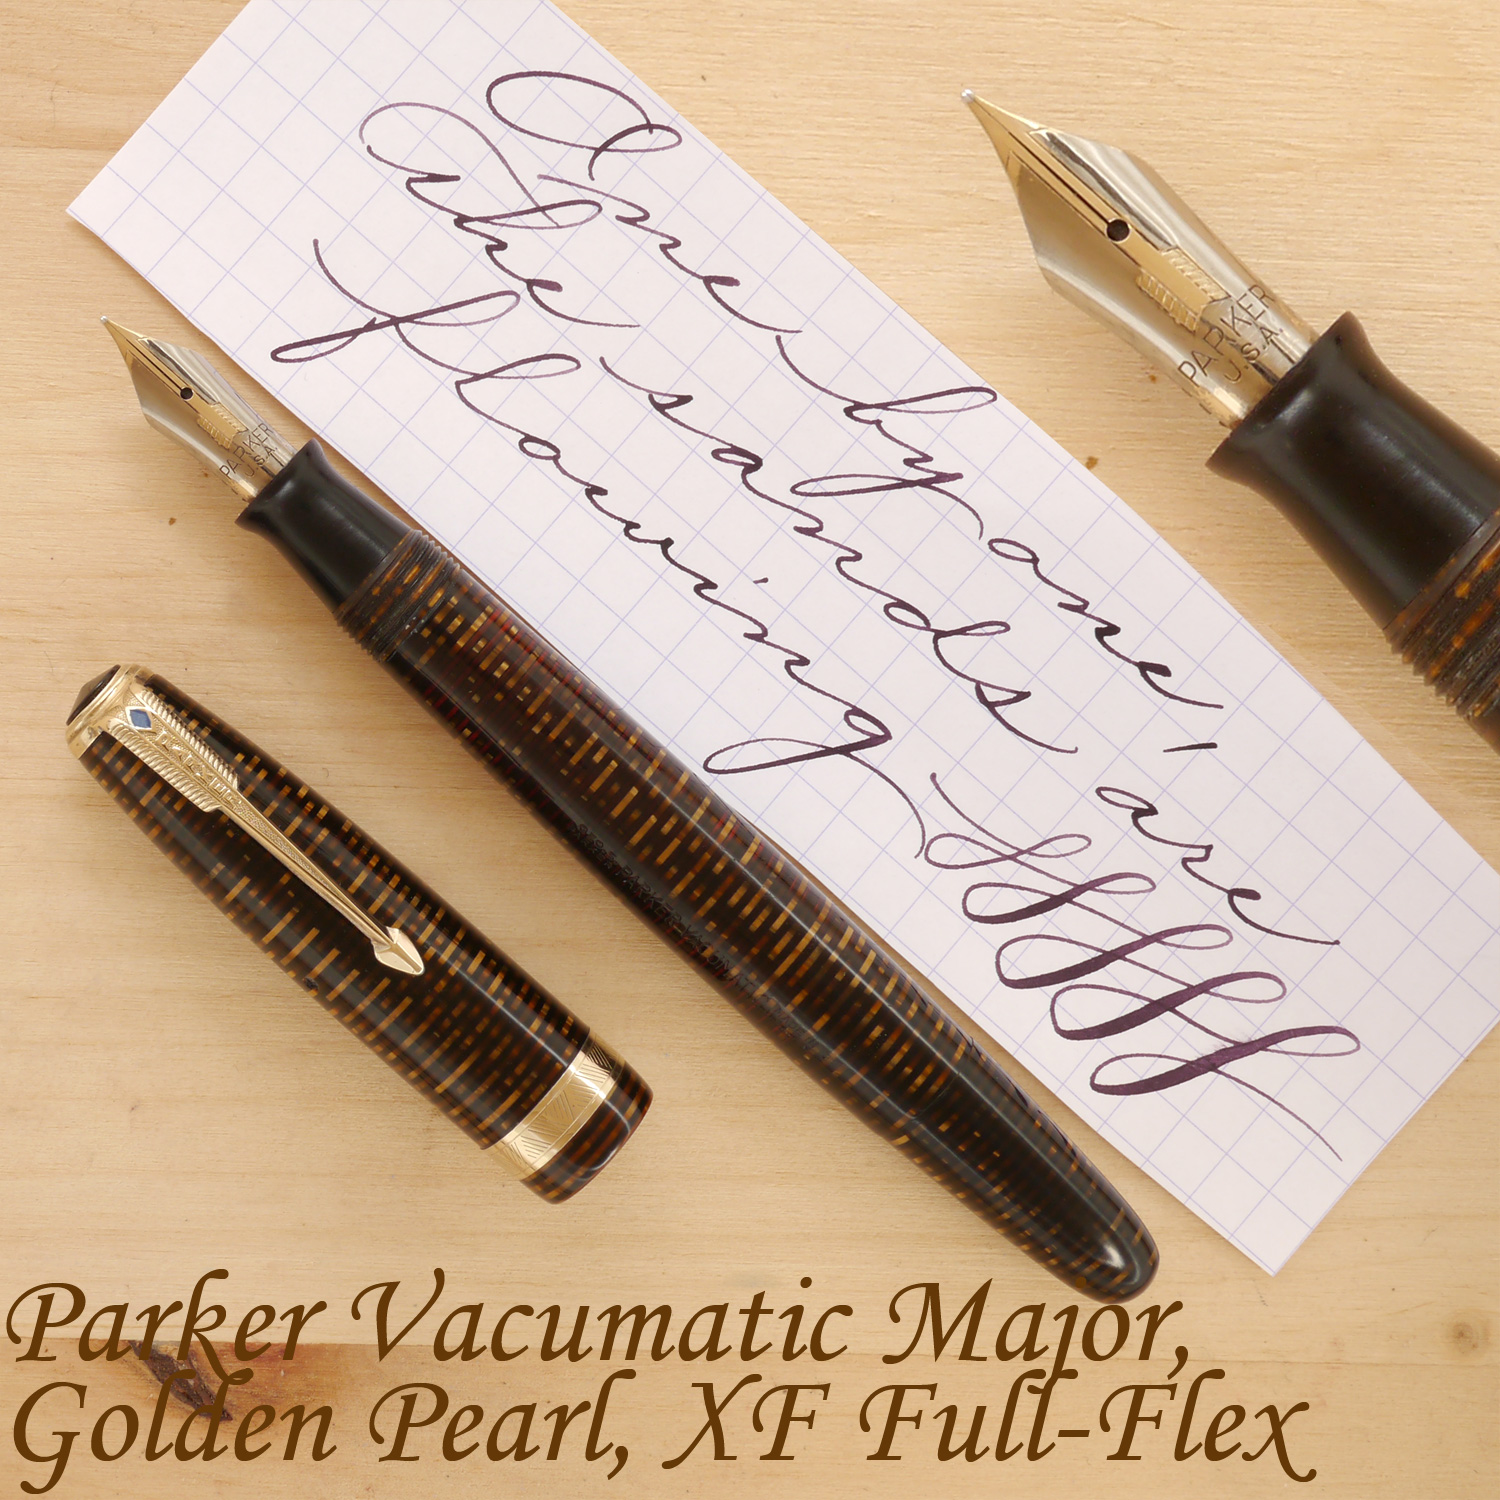 Parker Vacumatic Major, Golden Pearl, XF Full-Flex, uncapped